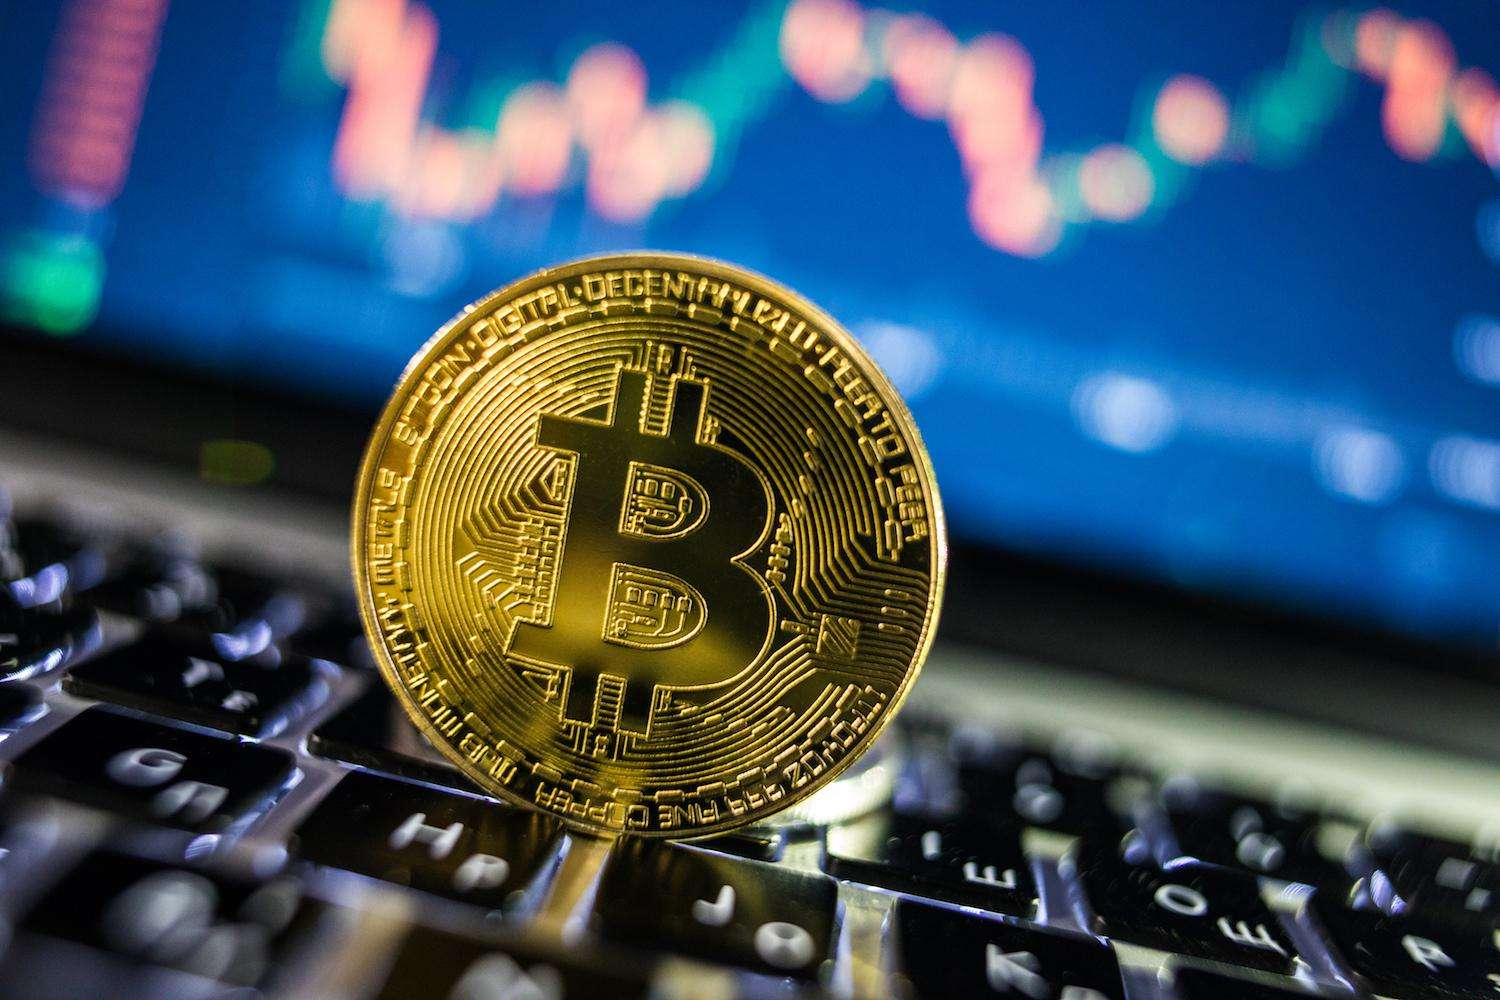 The old Zeng said currency: Can Ethereum break the shock range in the evening?